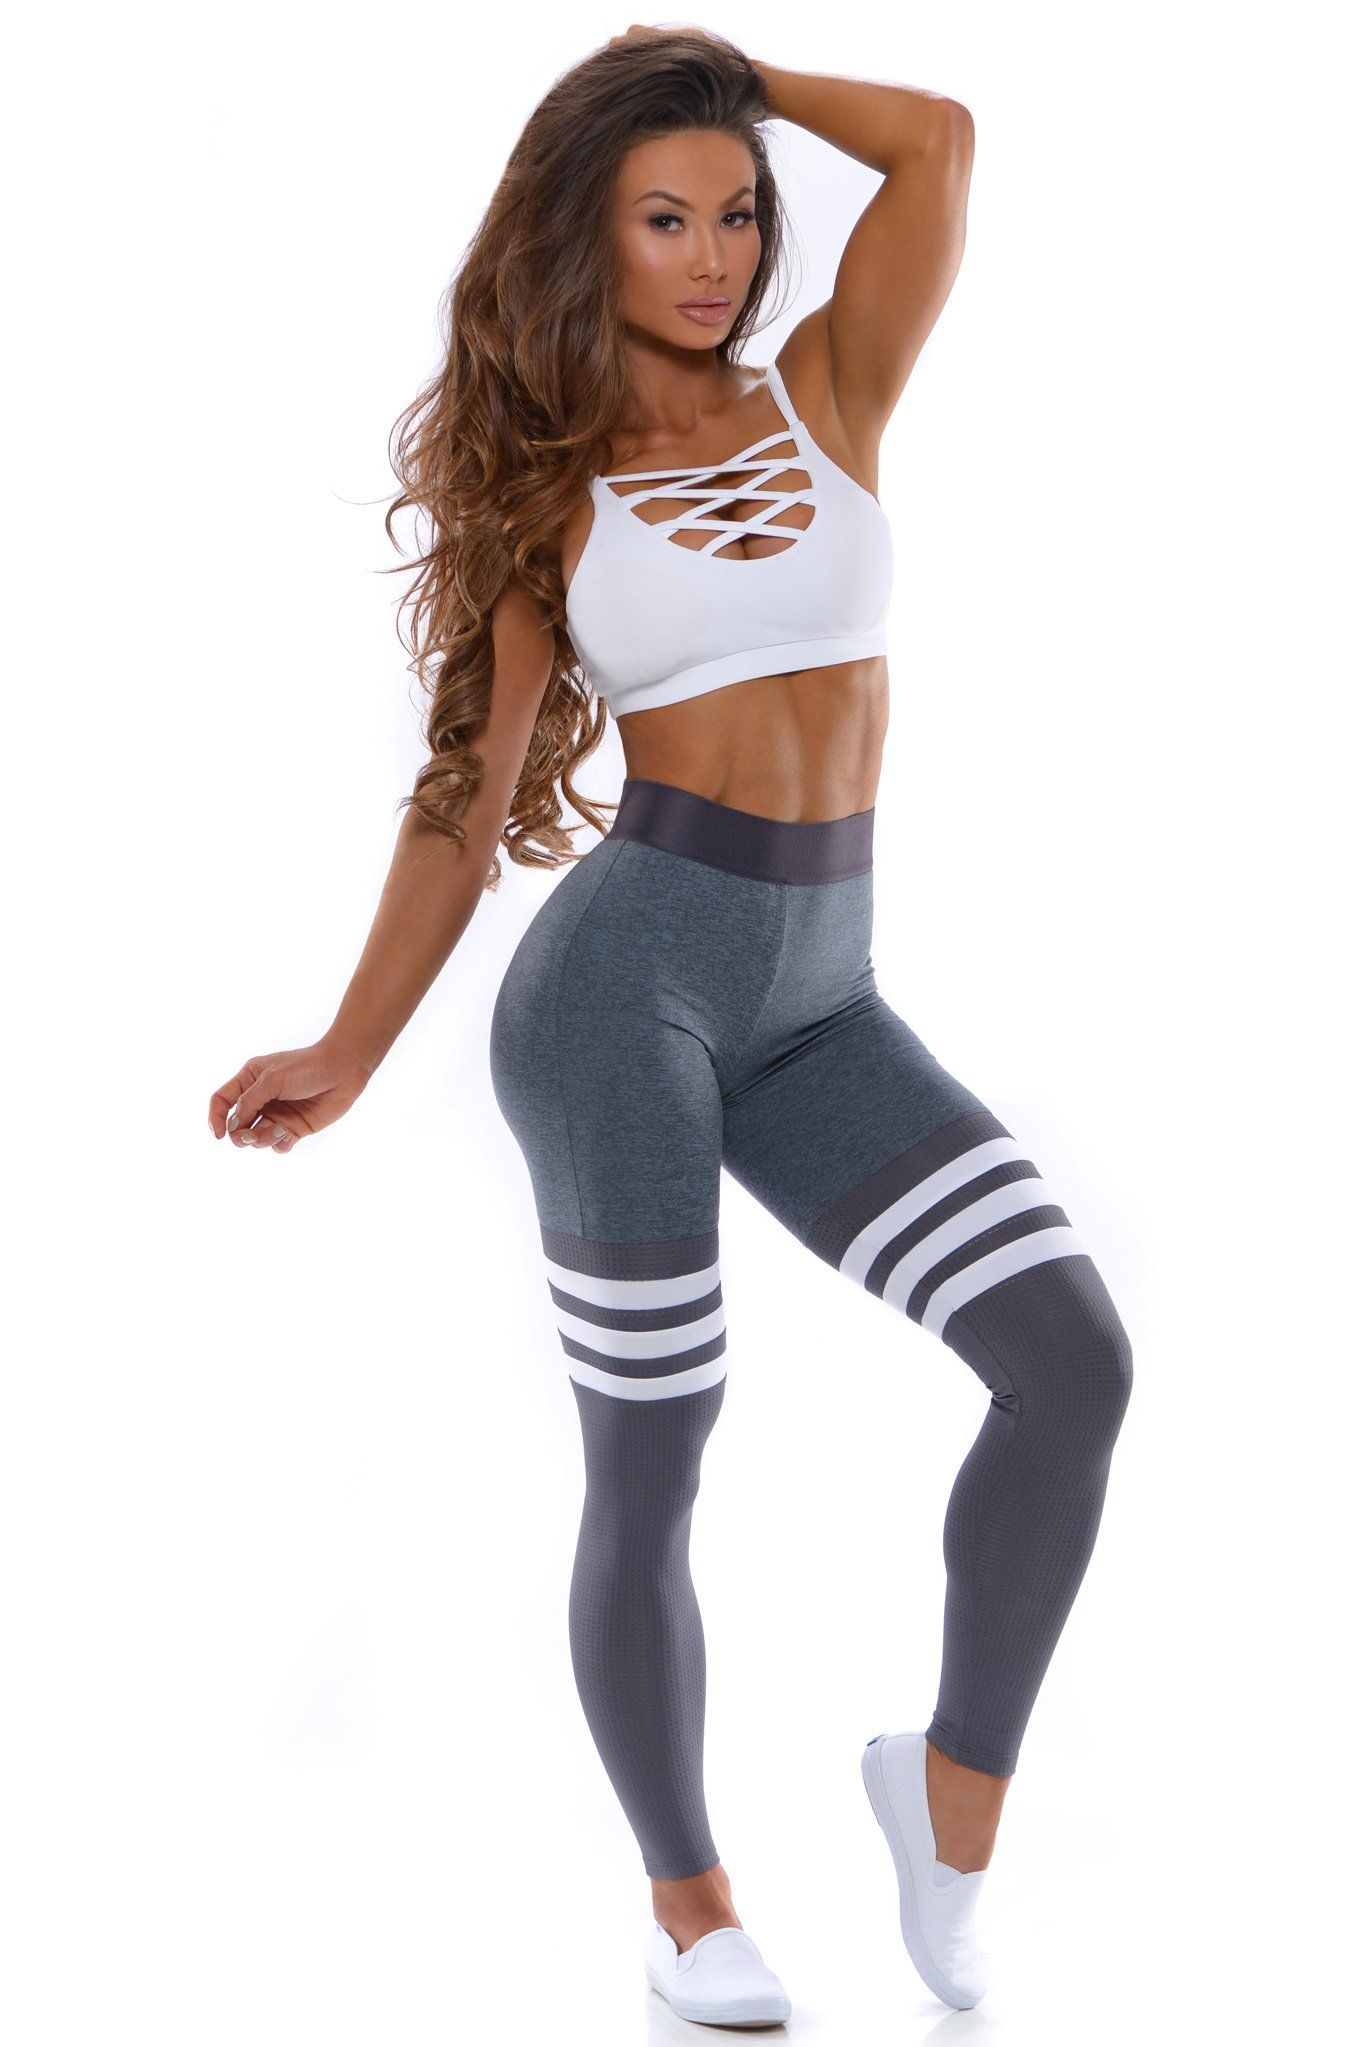 618a098690e89 Designer of the original patented Sock Leggings™, Bombshell Sportswear  leads the way in fitness fashion, and is renowned for its signature  in-house designs, ...